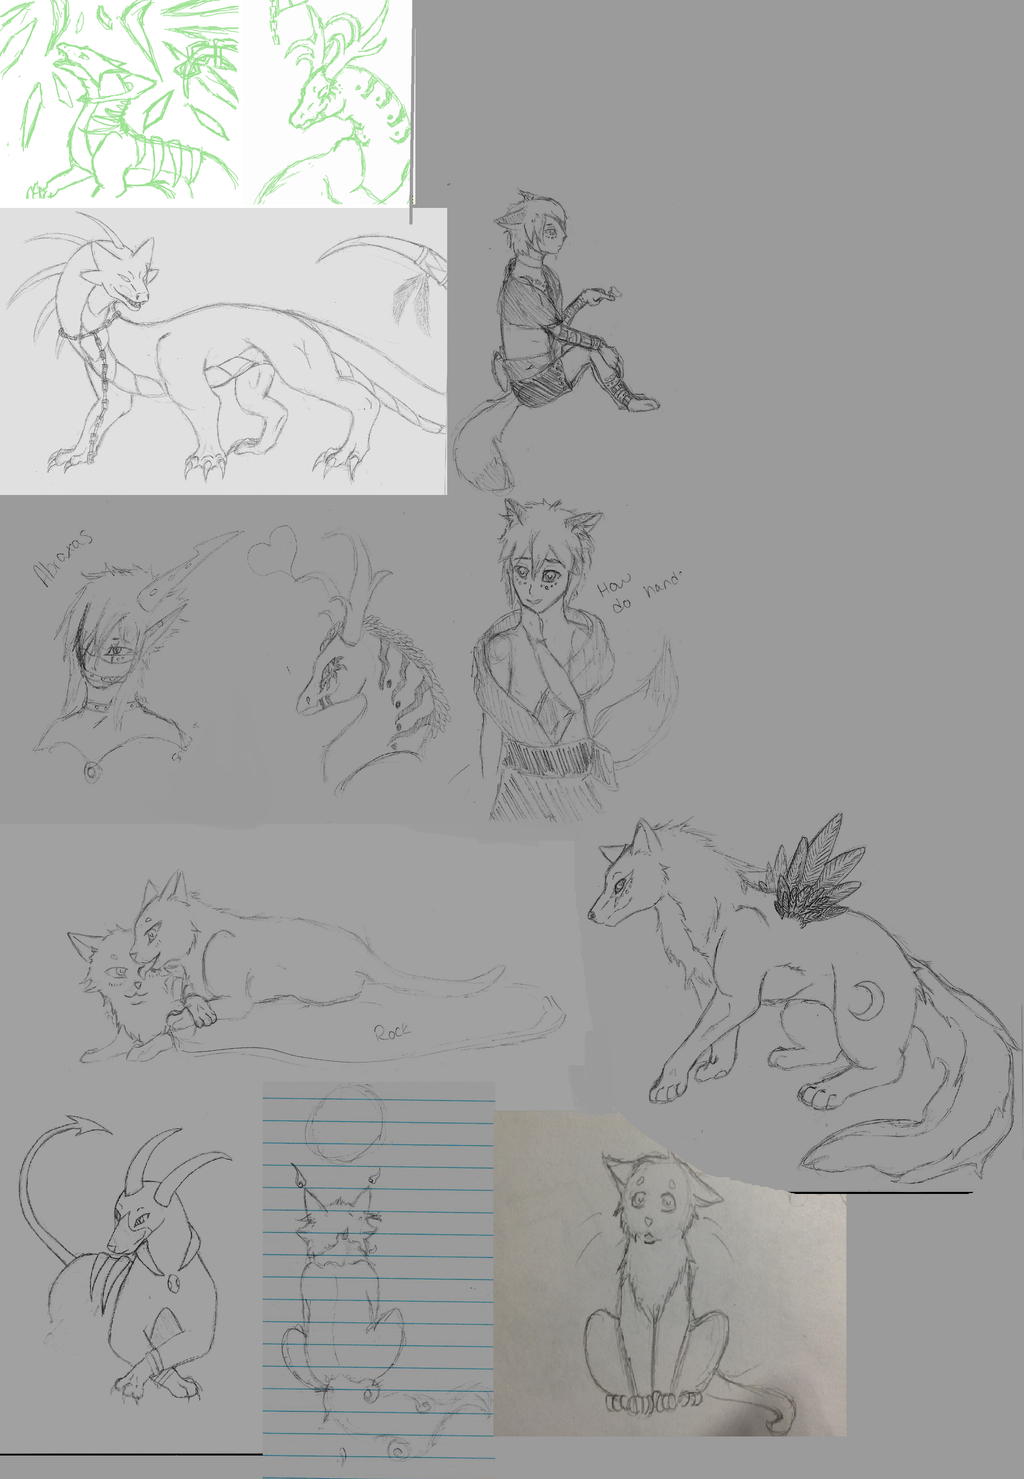 Art dump from 2014 unfinished work by AbyssinalPhantom